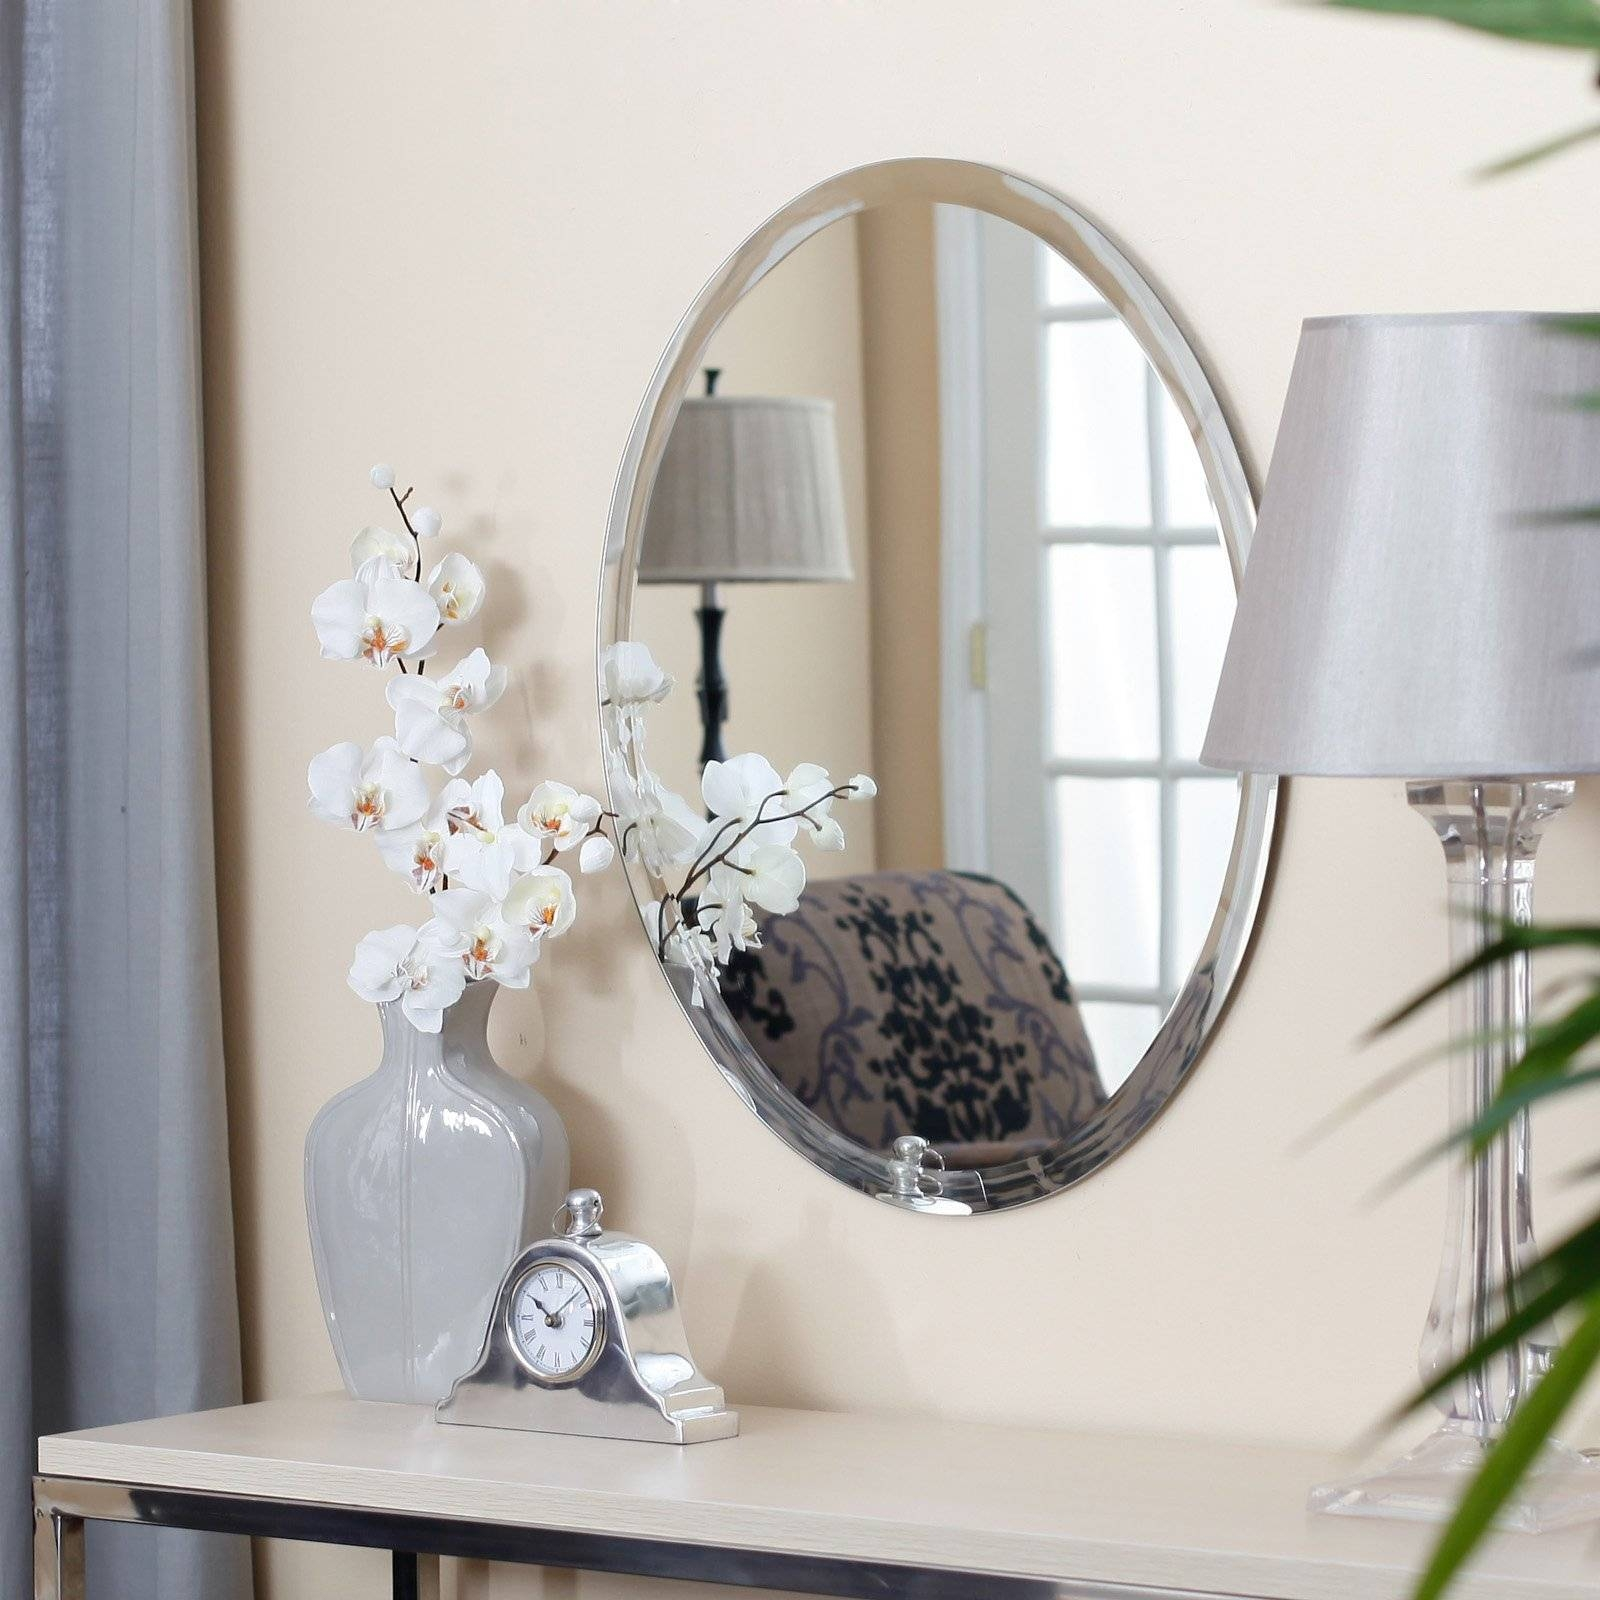 Uttermost Frameless Oval Beveled Vanity Mirror | Hayneedle regarding Large Oval Mirrors (Image 24 of 25)